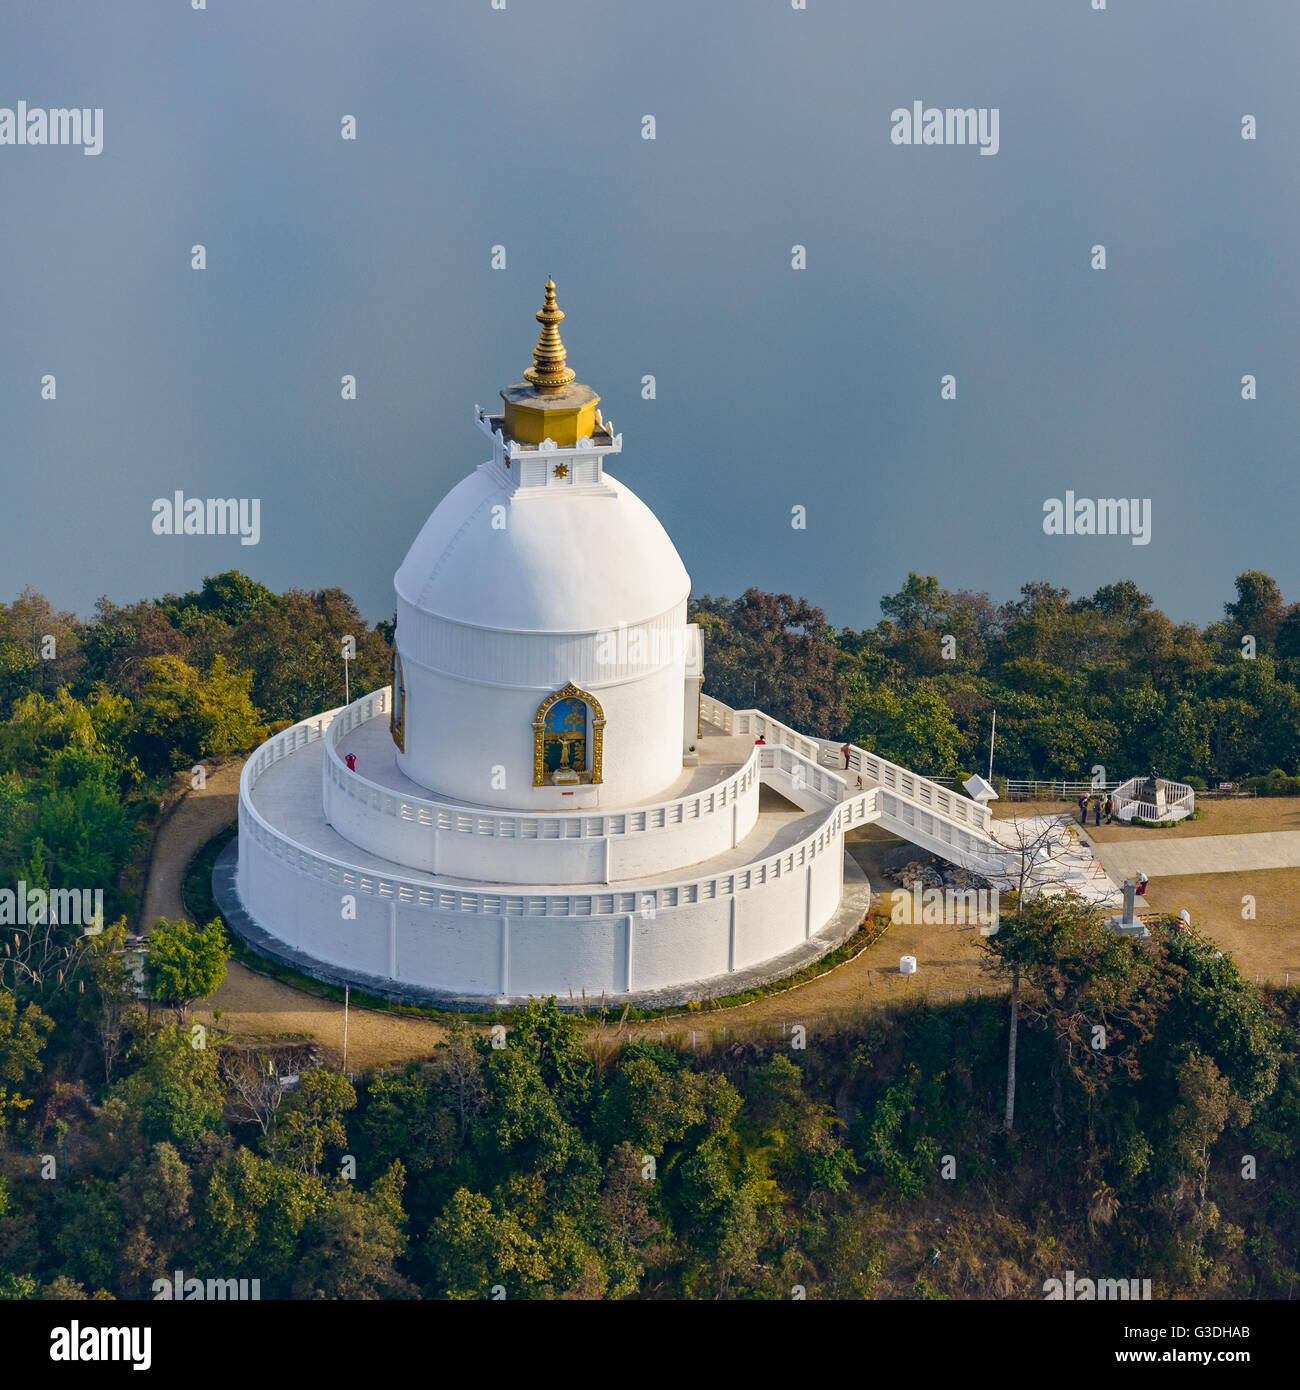 Aerial view of the World Peace Pagoda in Pokhara, Nepal - Stock Image